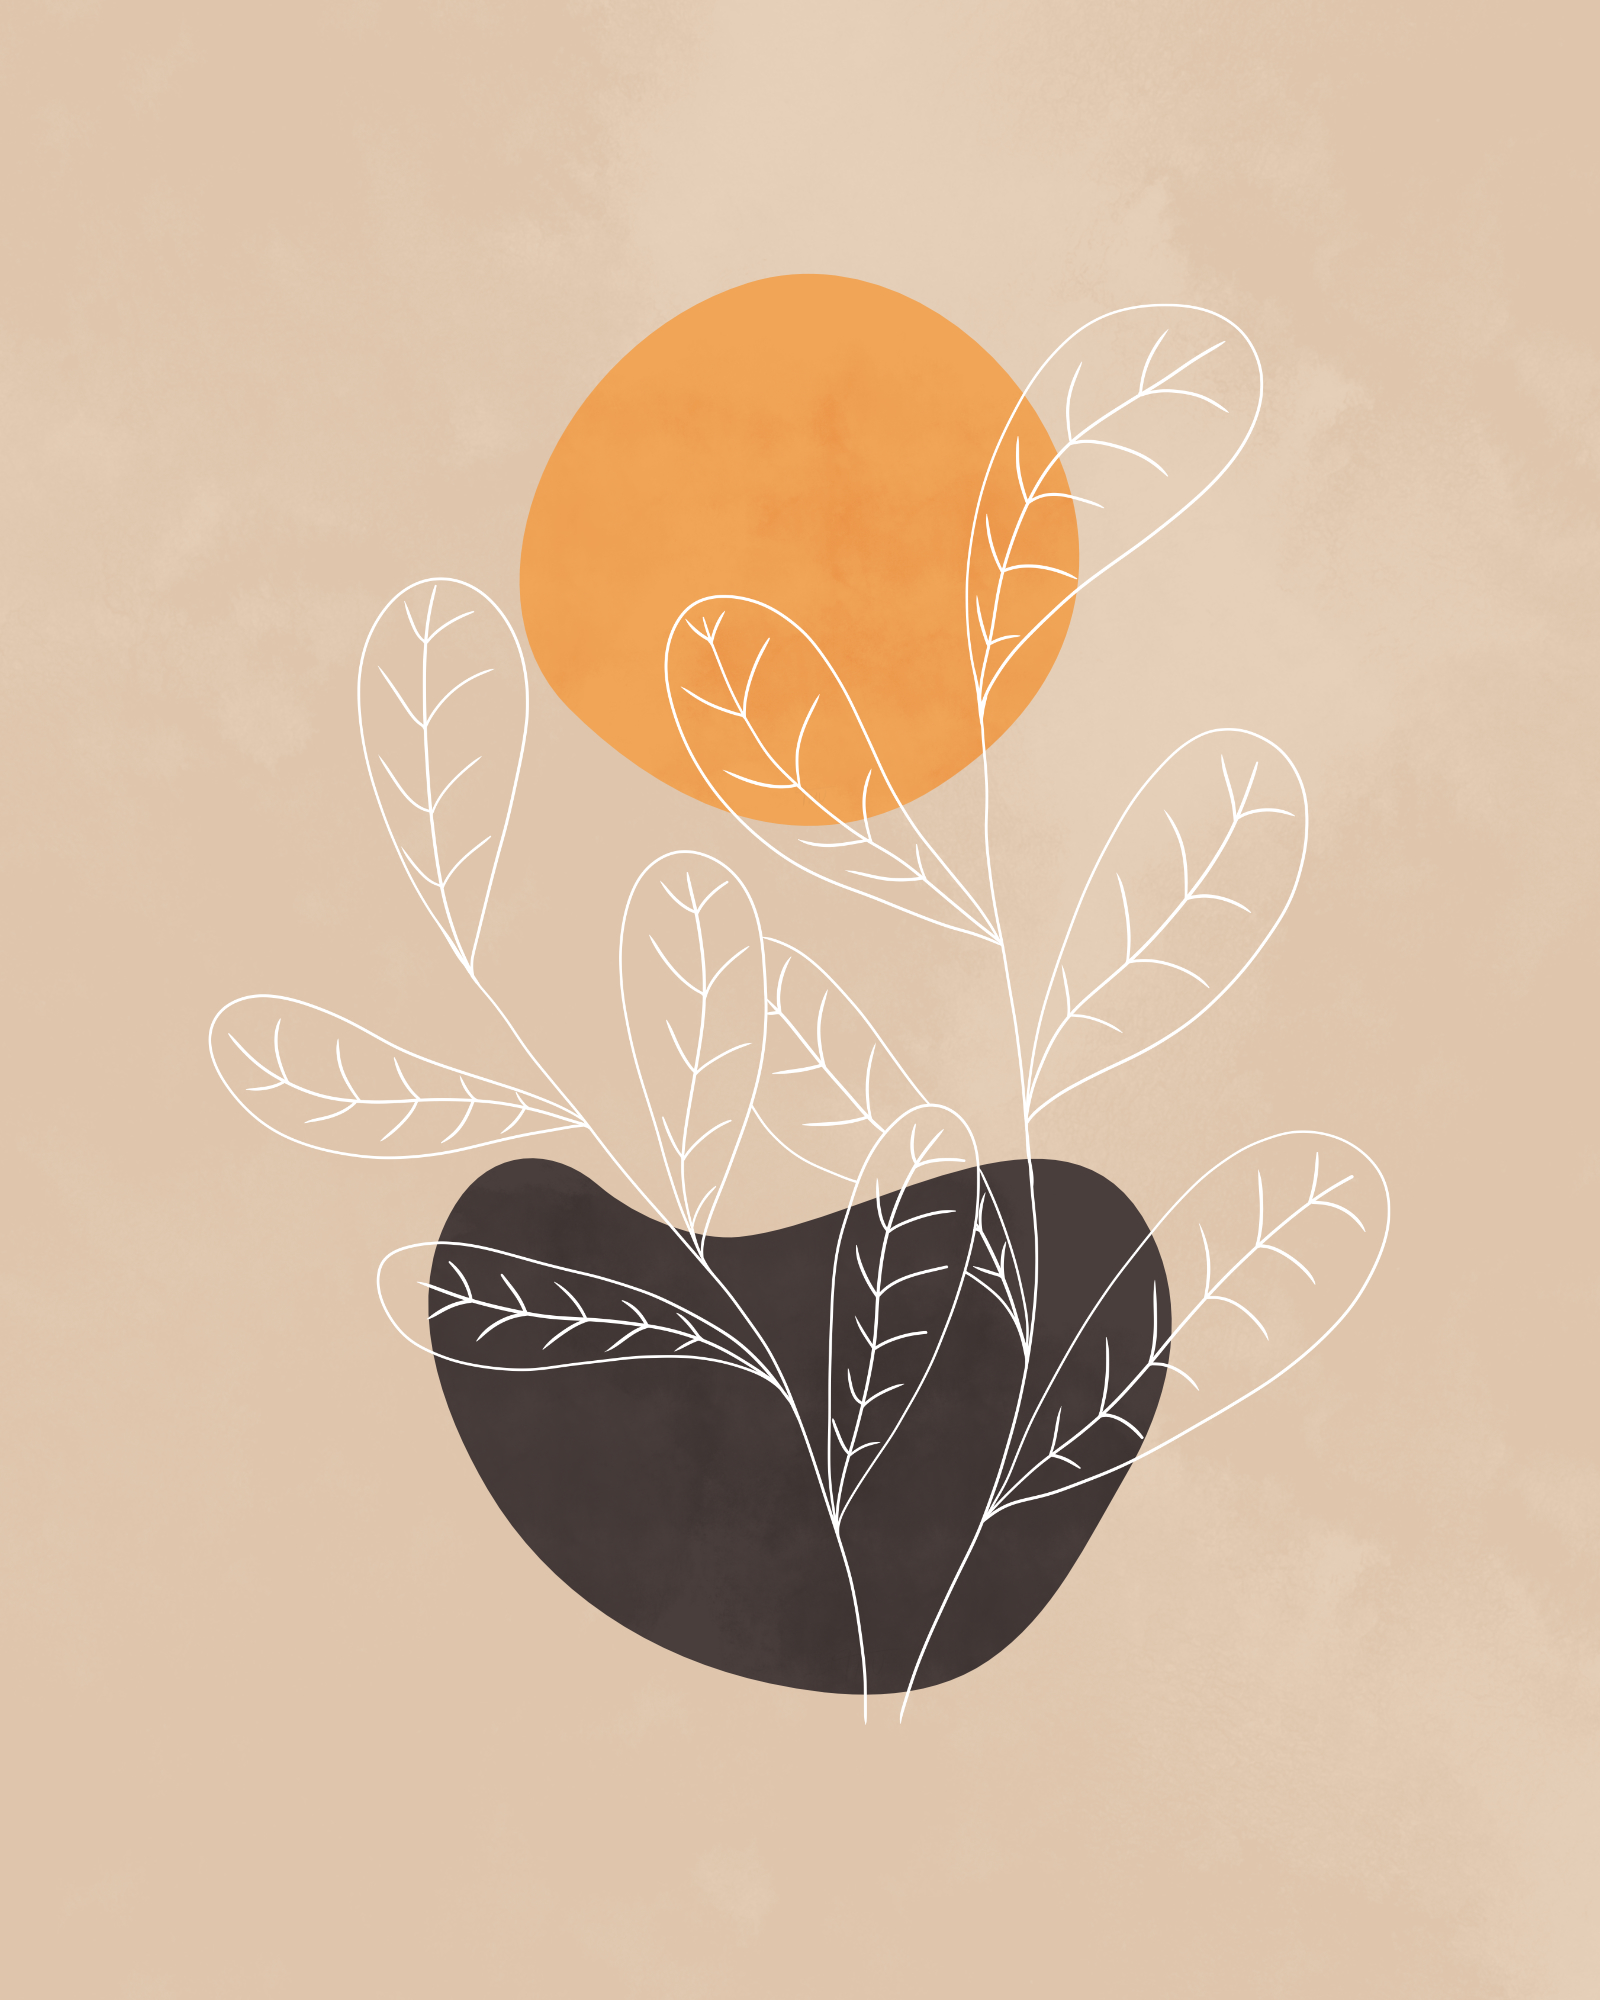 Minimalist lines and shapes landscape in autumn colors, abstract landscape art with a leafy plant 4